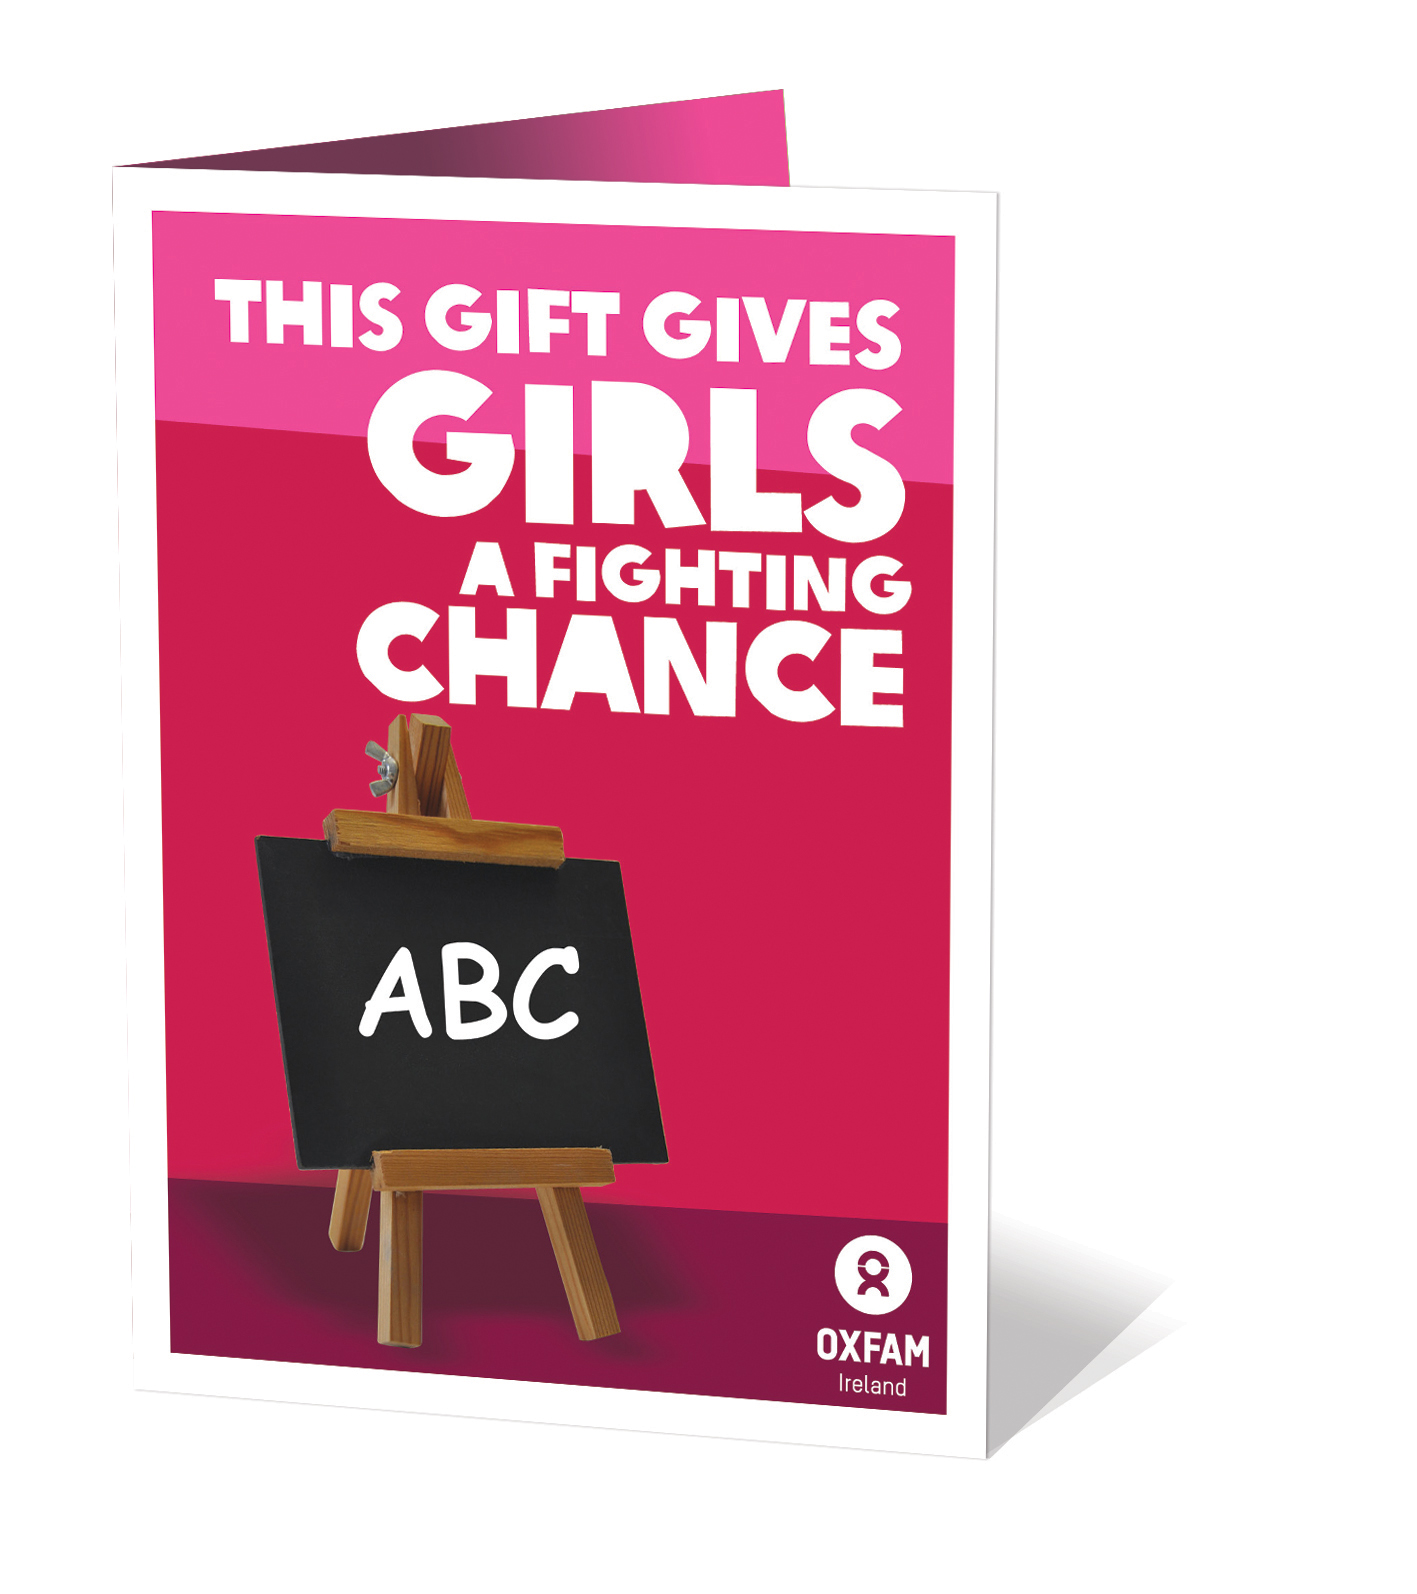 Oxfam Educate a Girl Gift image